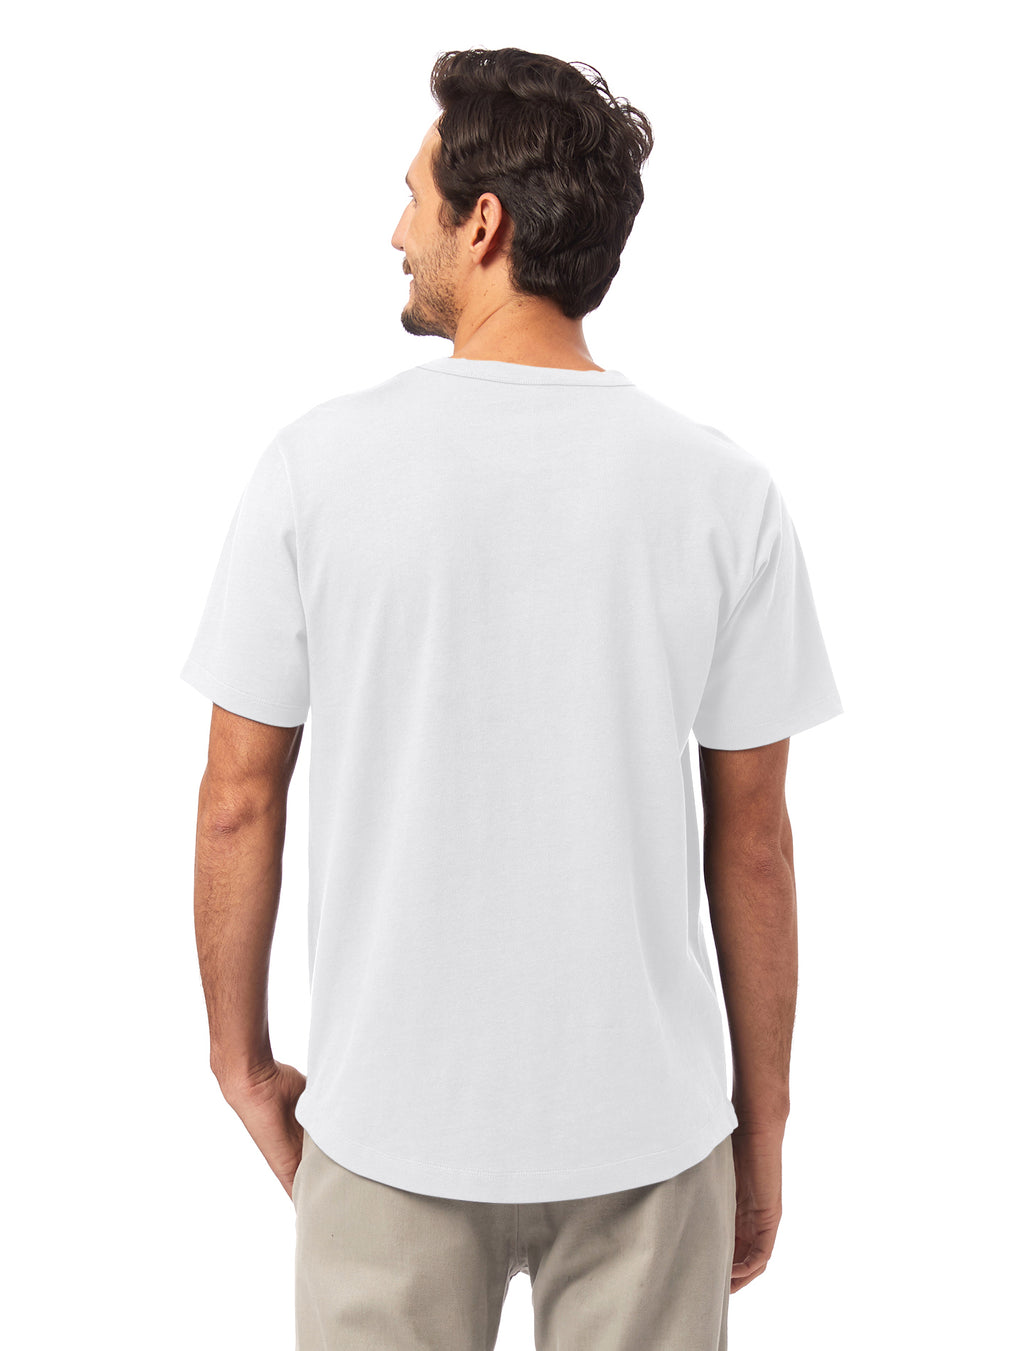 Alternative Apparel Hemp Blend T-Shirt- White